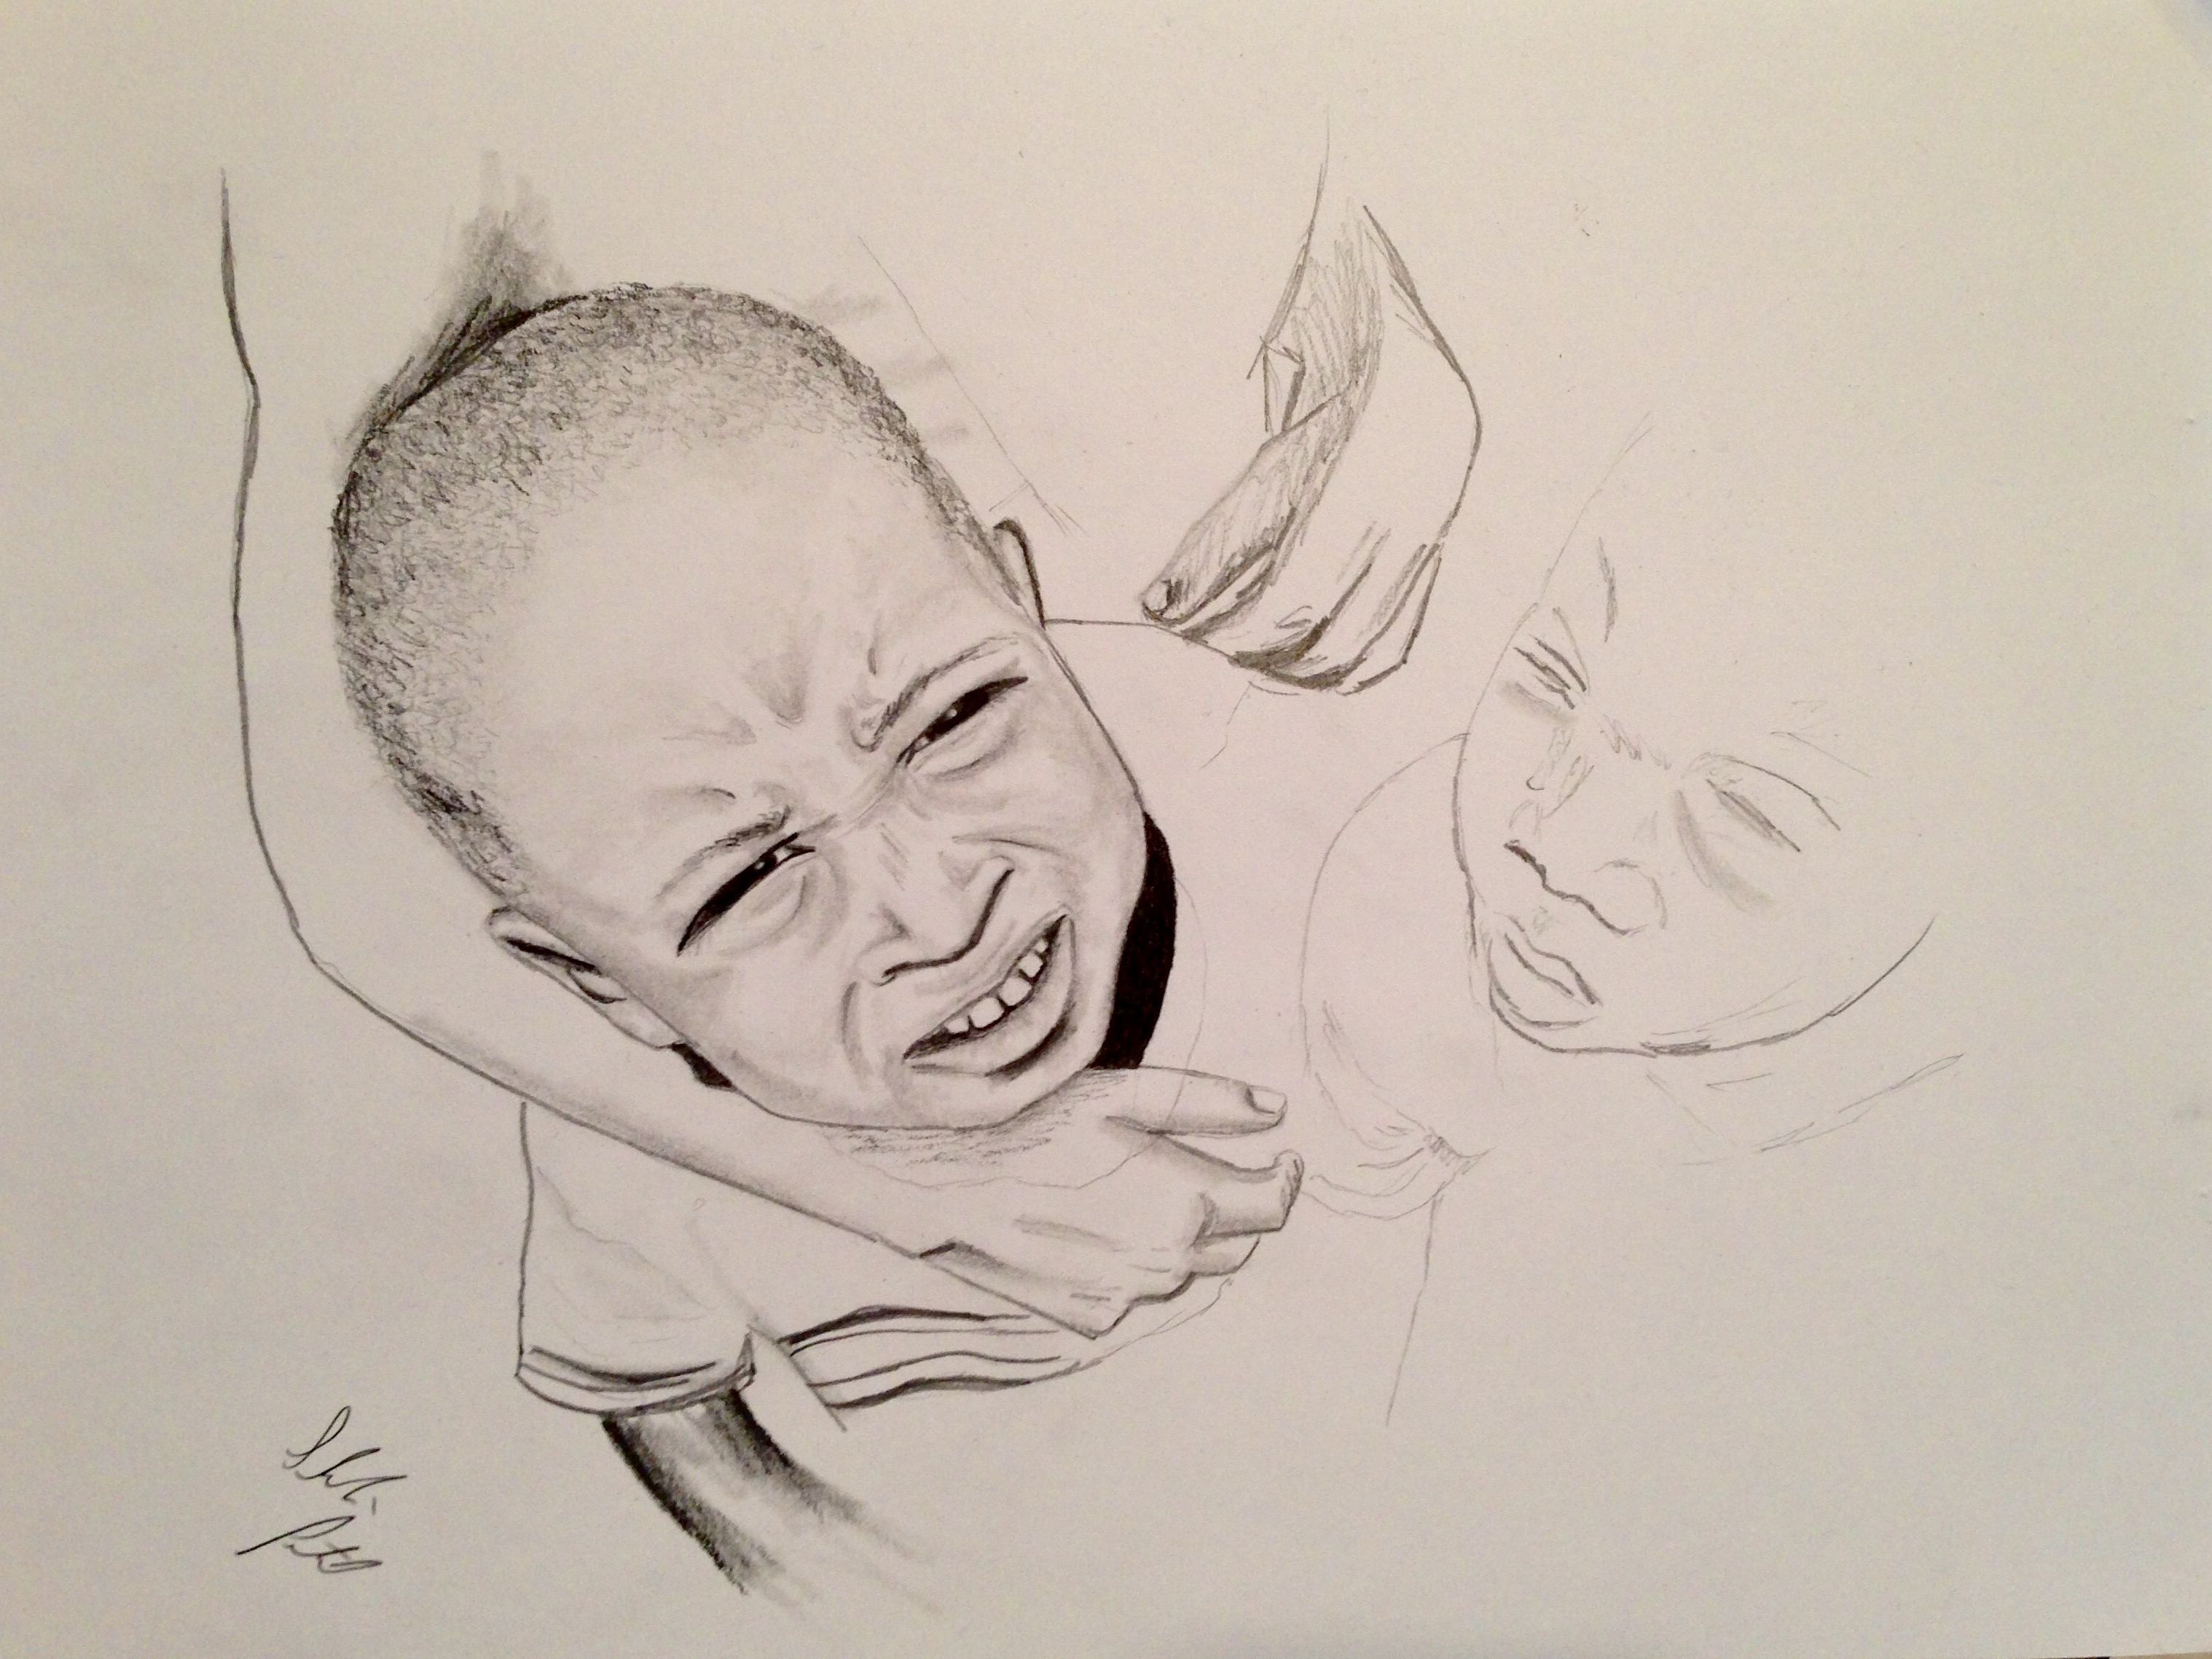 Drawing of child with another person's arm wrapped around his head